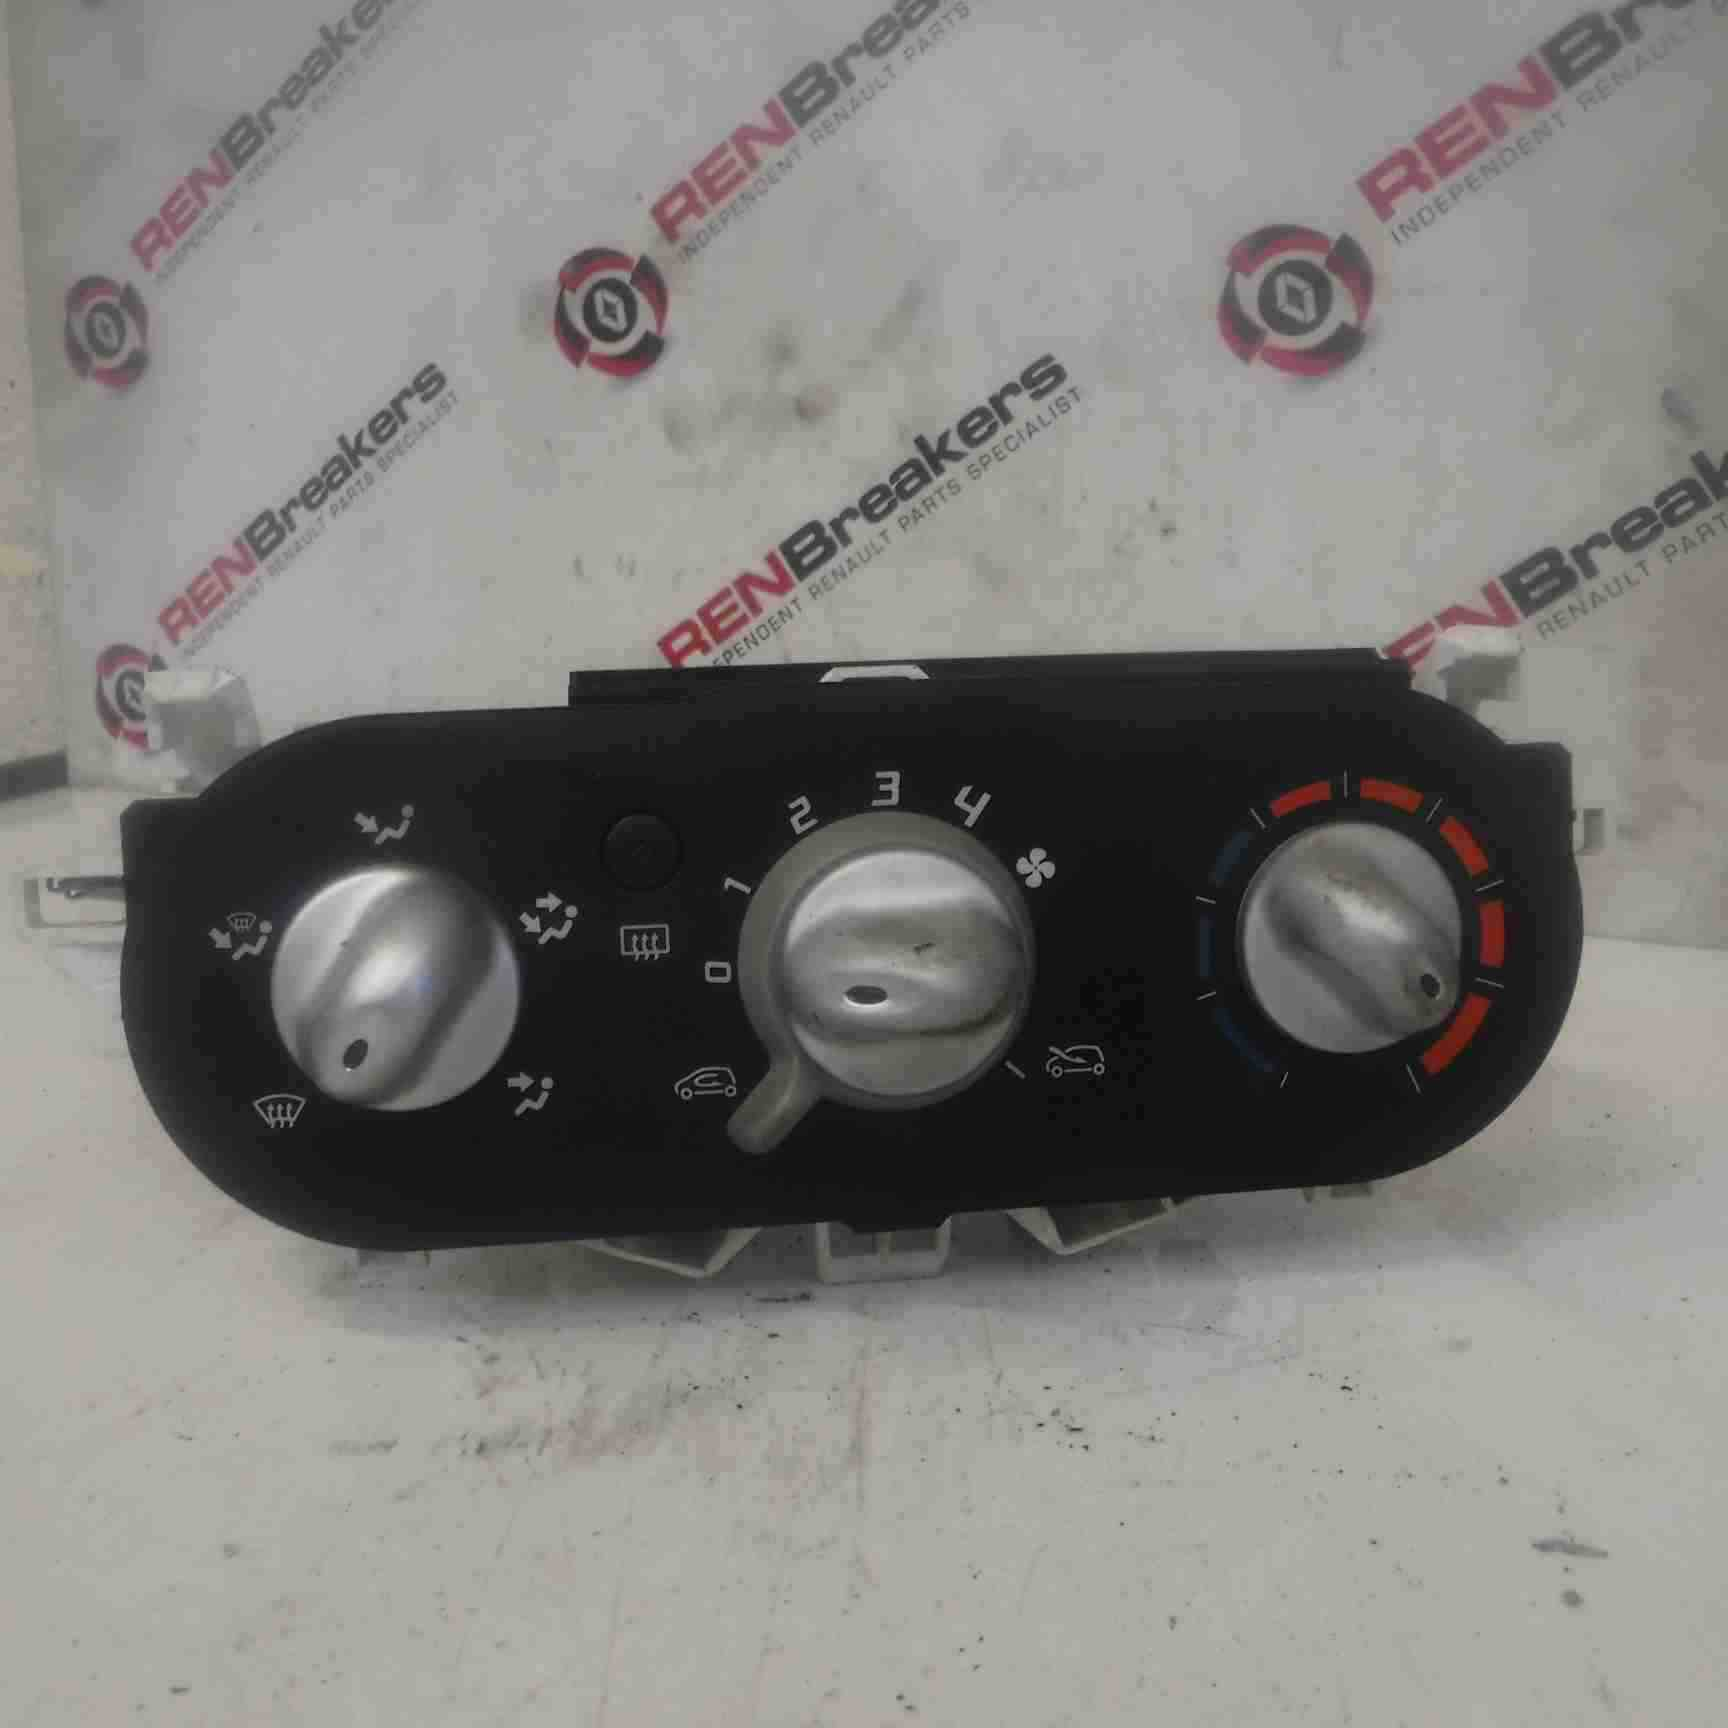 Renault Twingo 2007-2011 Heater Control Panel Switches Dials NO AIRCON 0991282C